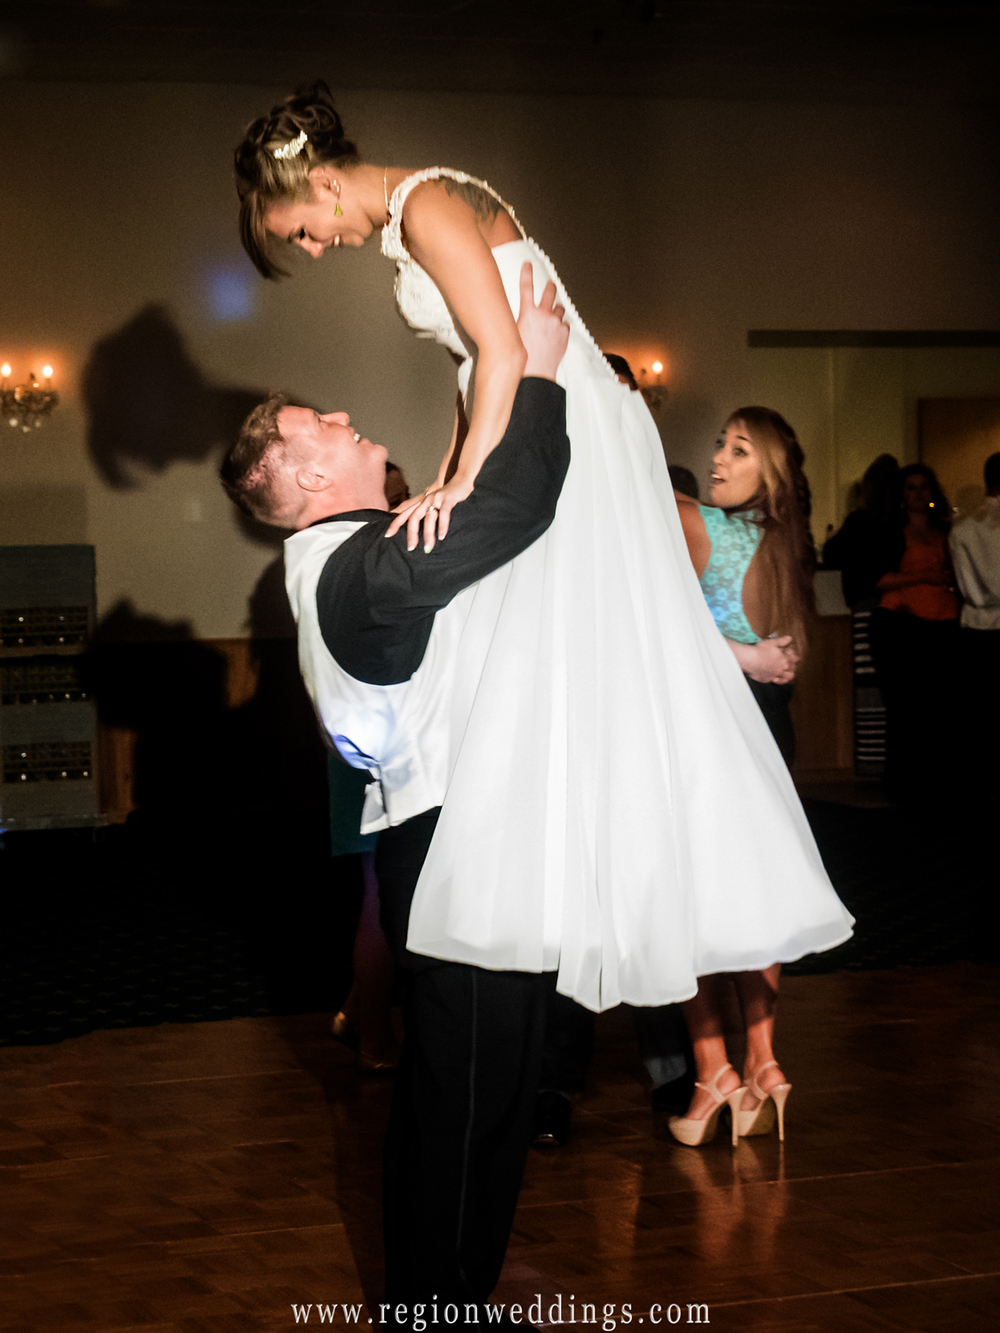 The groom lifts his bride triumphantly into the air at their wedding reception at The Patrician.